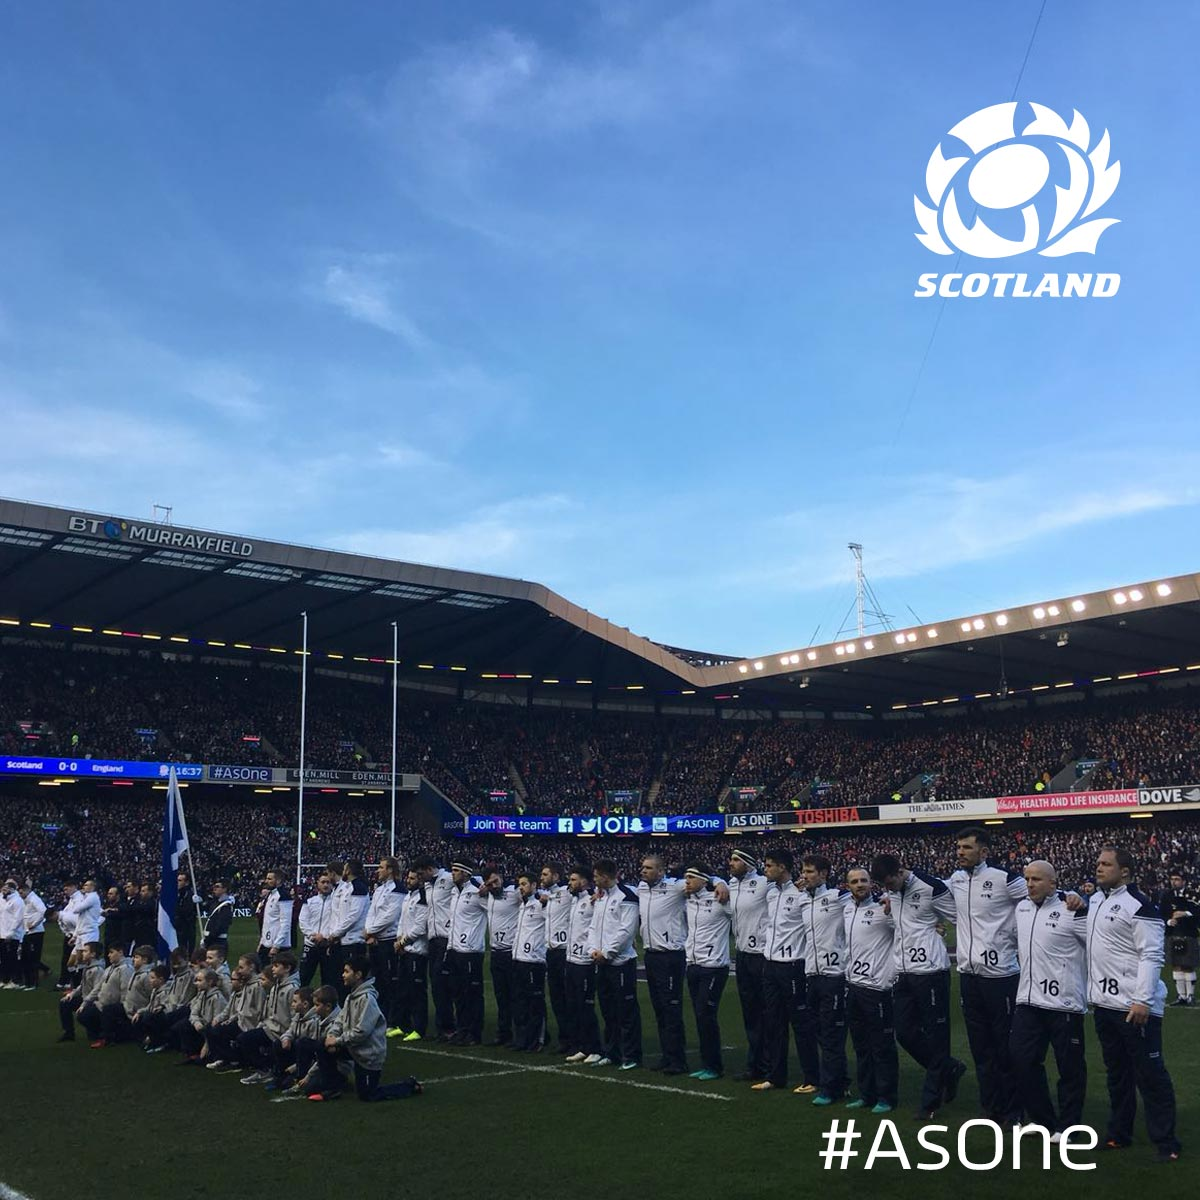 Both teams line up for the anthems here at BT Murrayfield! 🏴󠁧󠁢󠁳󠁣󠁴󠁿 #AsOne